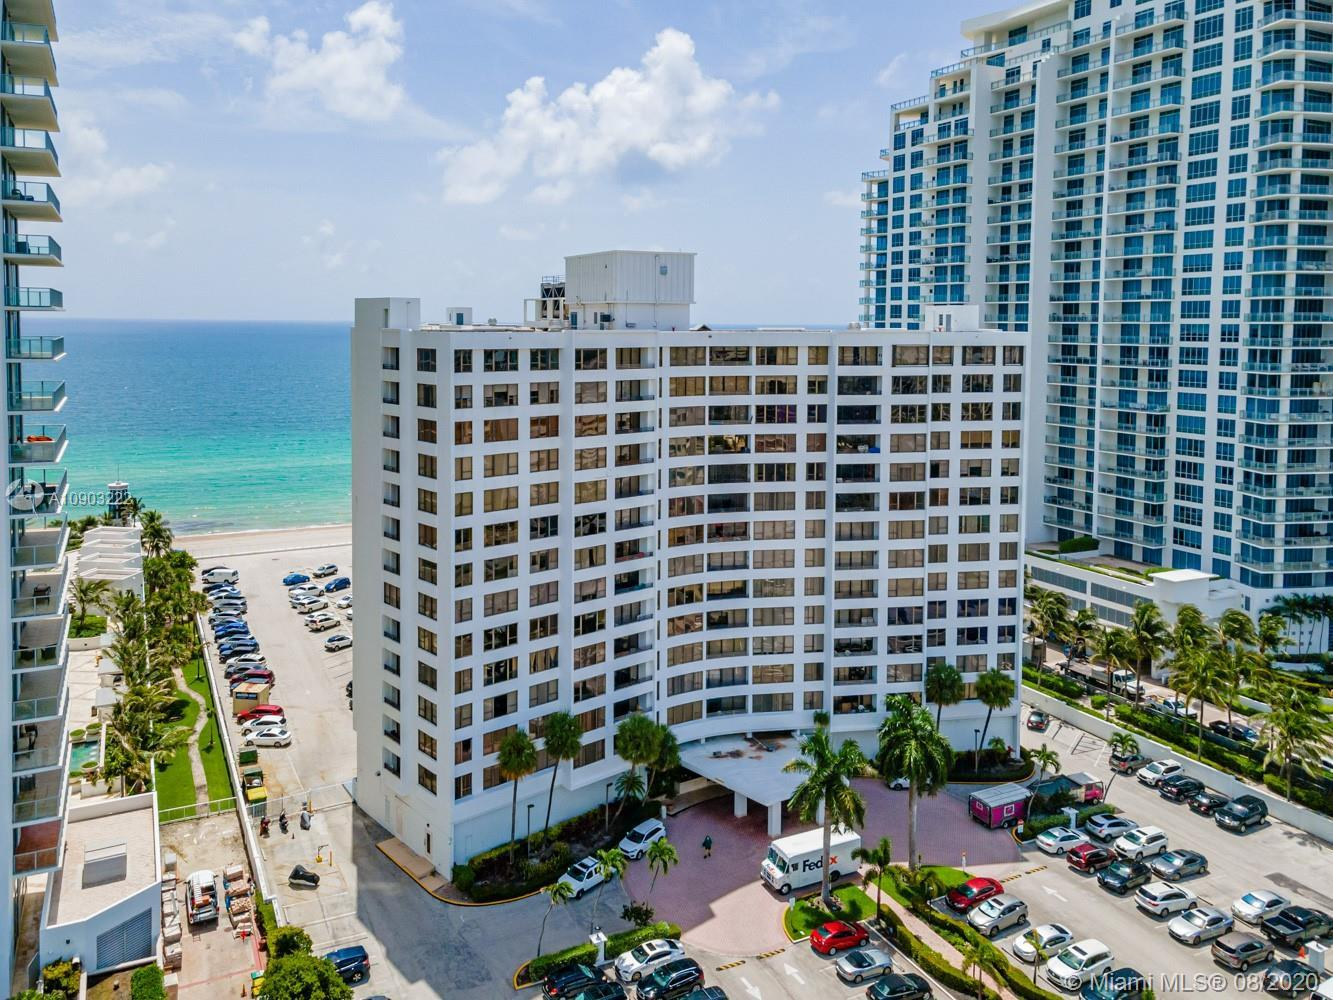 Move In ready 1bed/1.5bath Condo in Alexander Towers, an Ocean Front building. This 12th floor unit